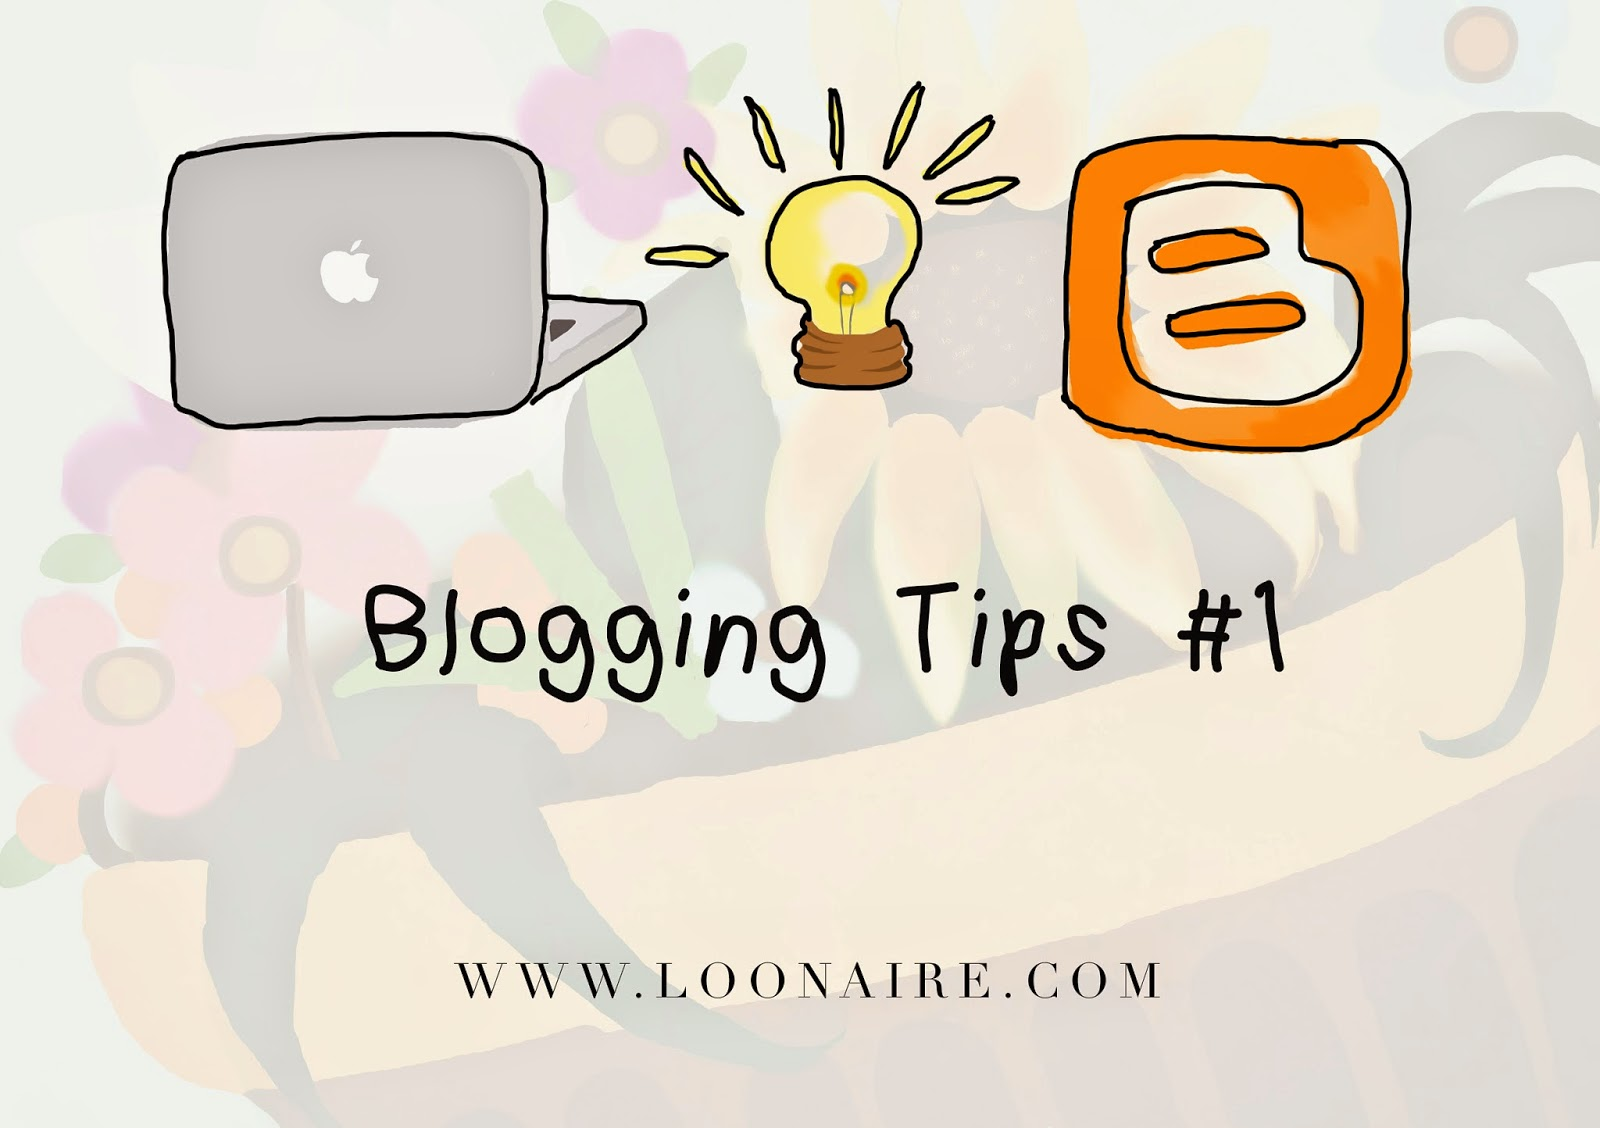 Loonaire blog tips